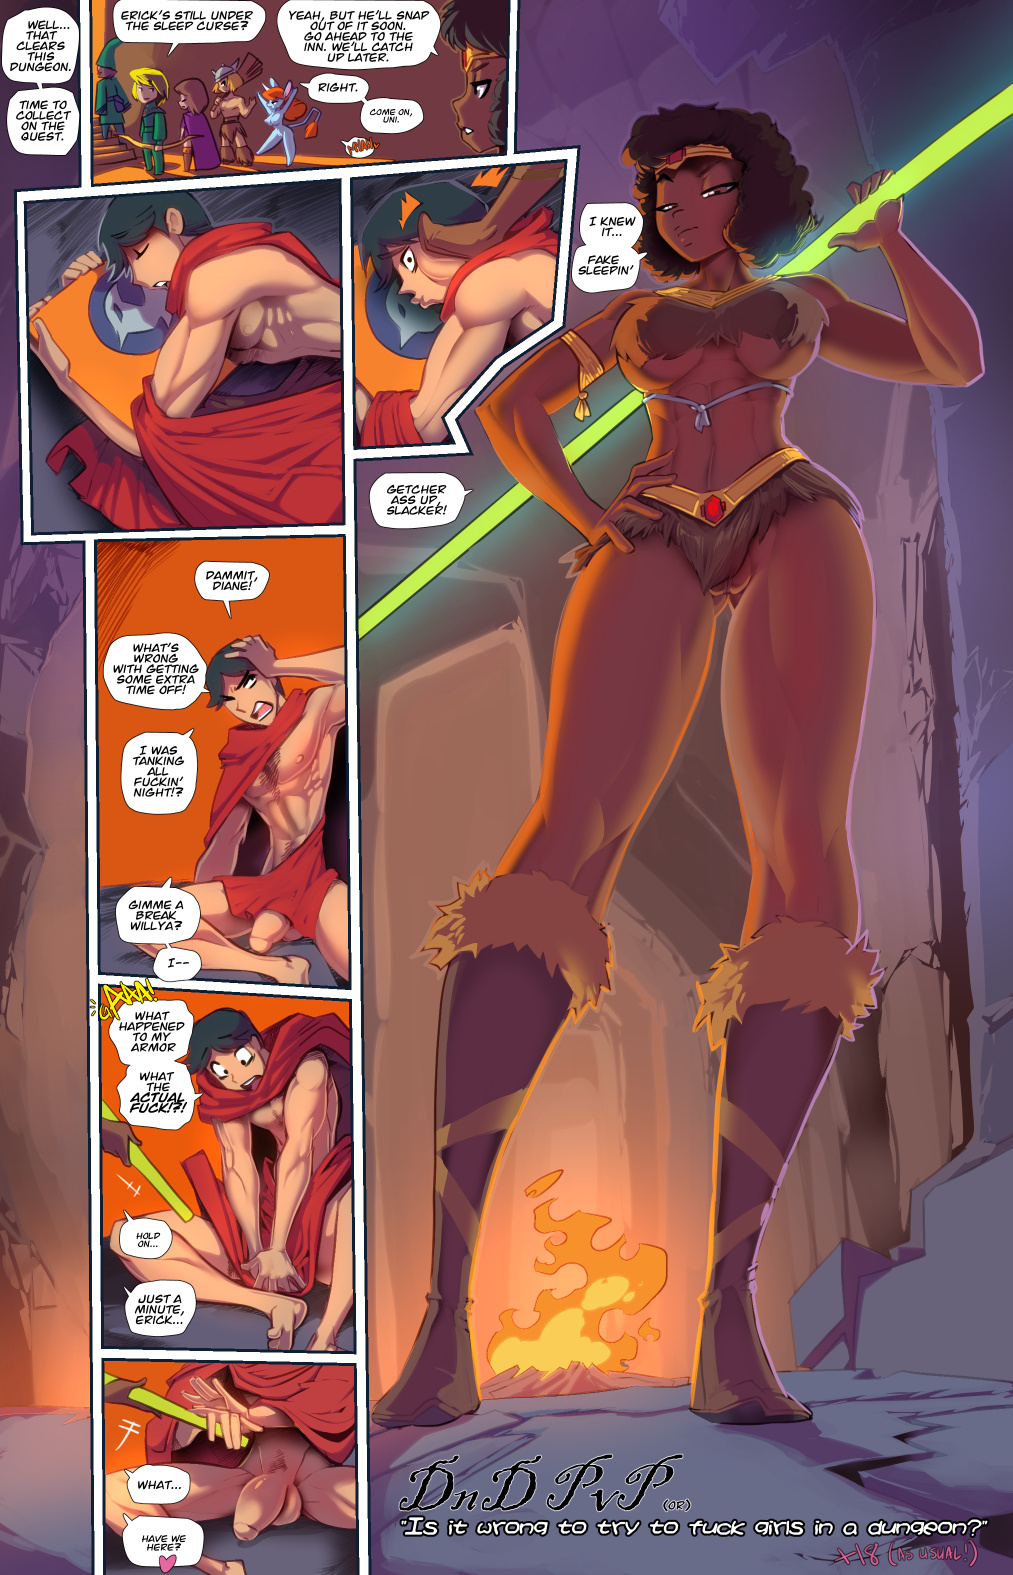 DnD PvP (or) Is It Wrong to Try to Fuck Girls In a Dungeon porn comics Oral sex, Blowjob, Creampie, cunnilingus, Furry, Group Sex, Masturbation, Stockings, Straight, X-Ray